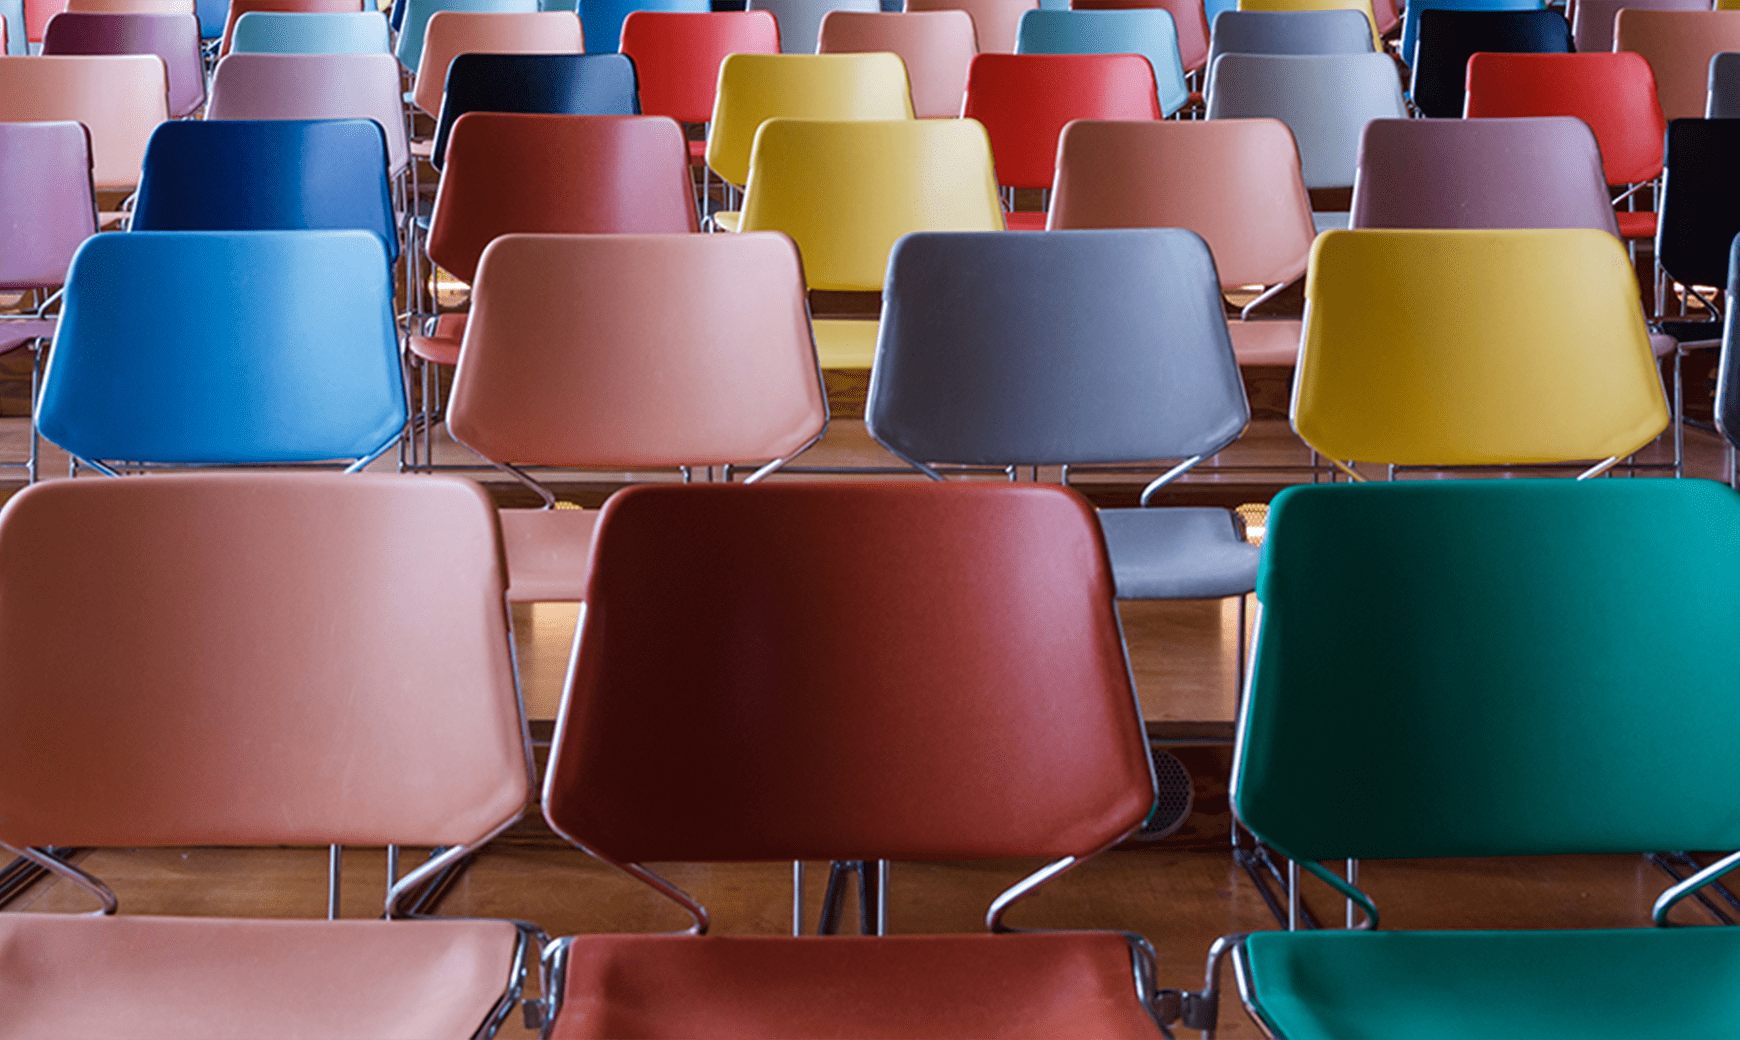 Insights Diversity Multi-Color Chairs